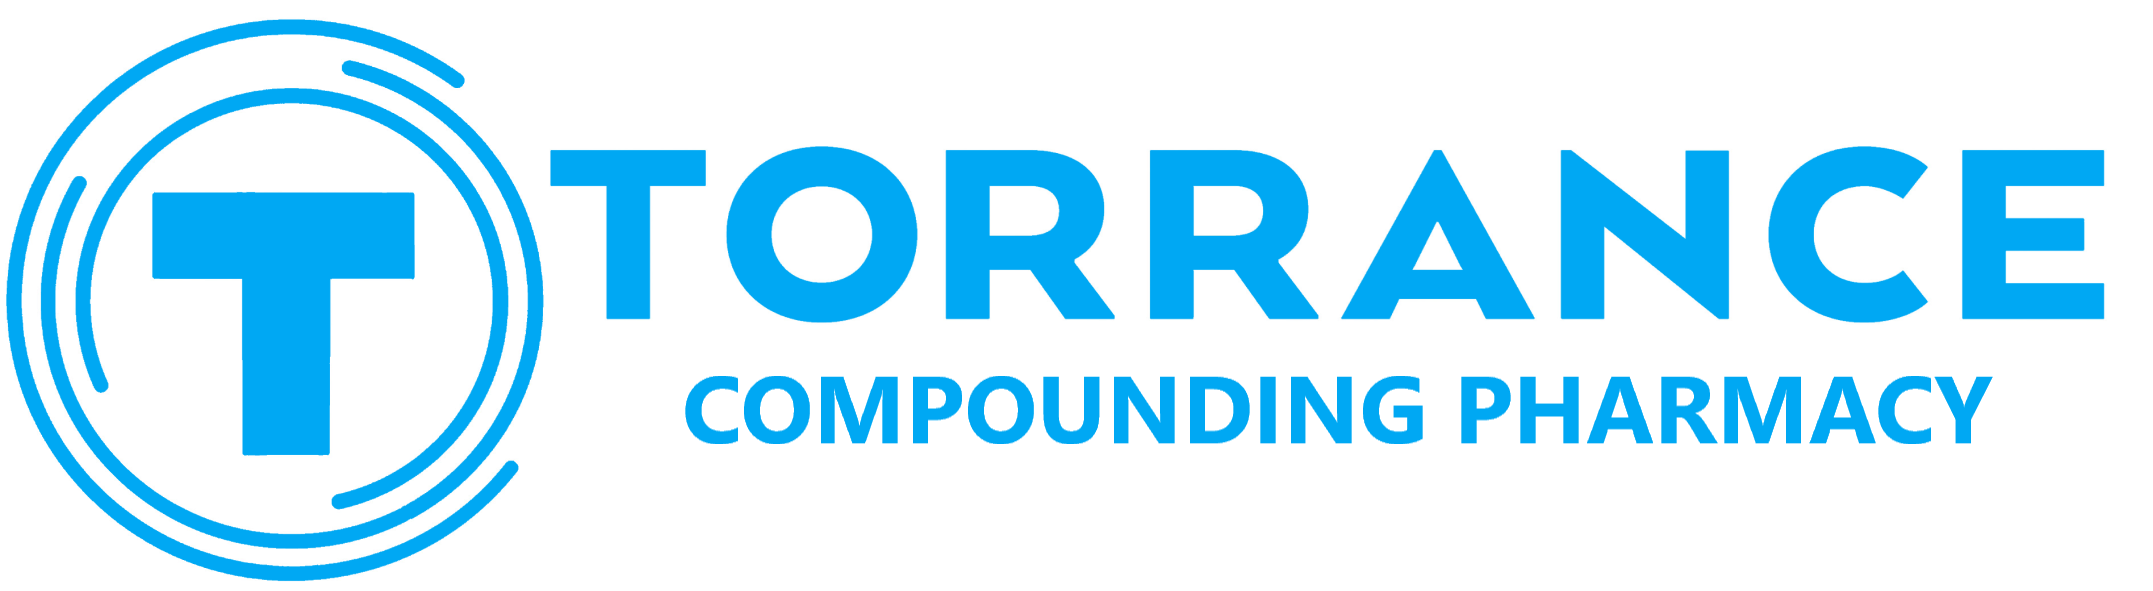 Torrance Compounding Pharmacy